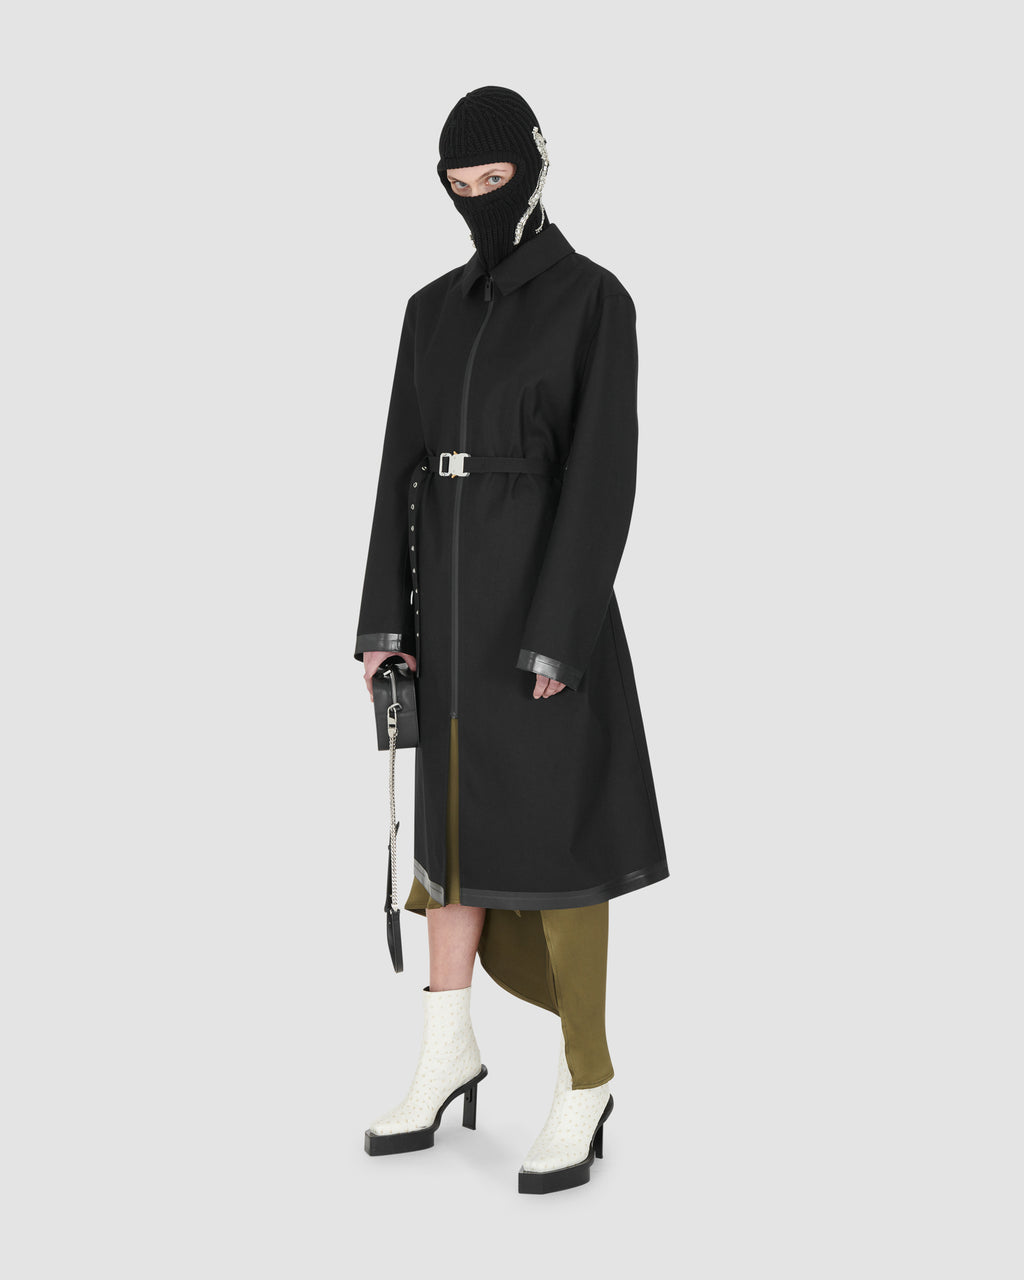 1017 ALYX 9SM | BALACLAVA WITH DIAMANTI EXCLUSIVE MADE TO ORDER | Hat | F20, FW20 PRE-ORDER